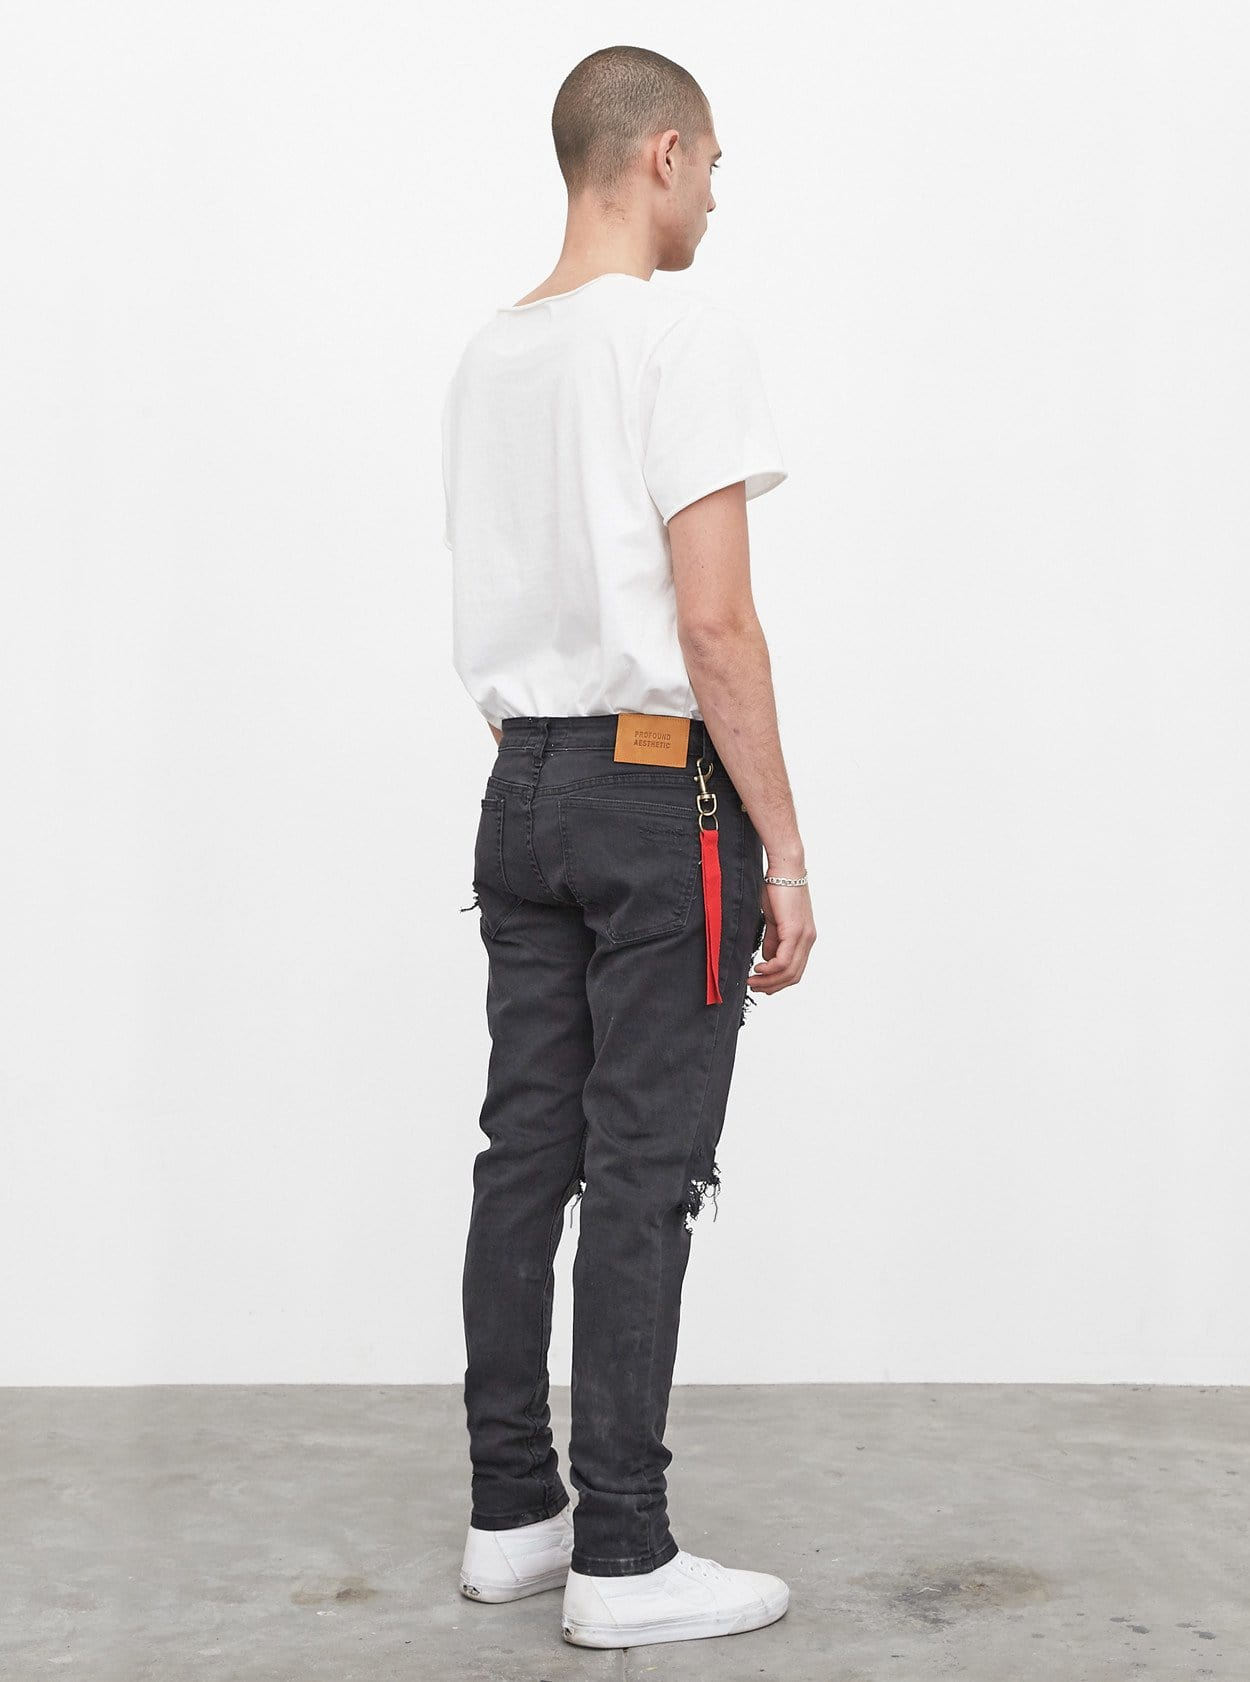 Washed faded black destroyed distressed denim jeans by profound aesthetic